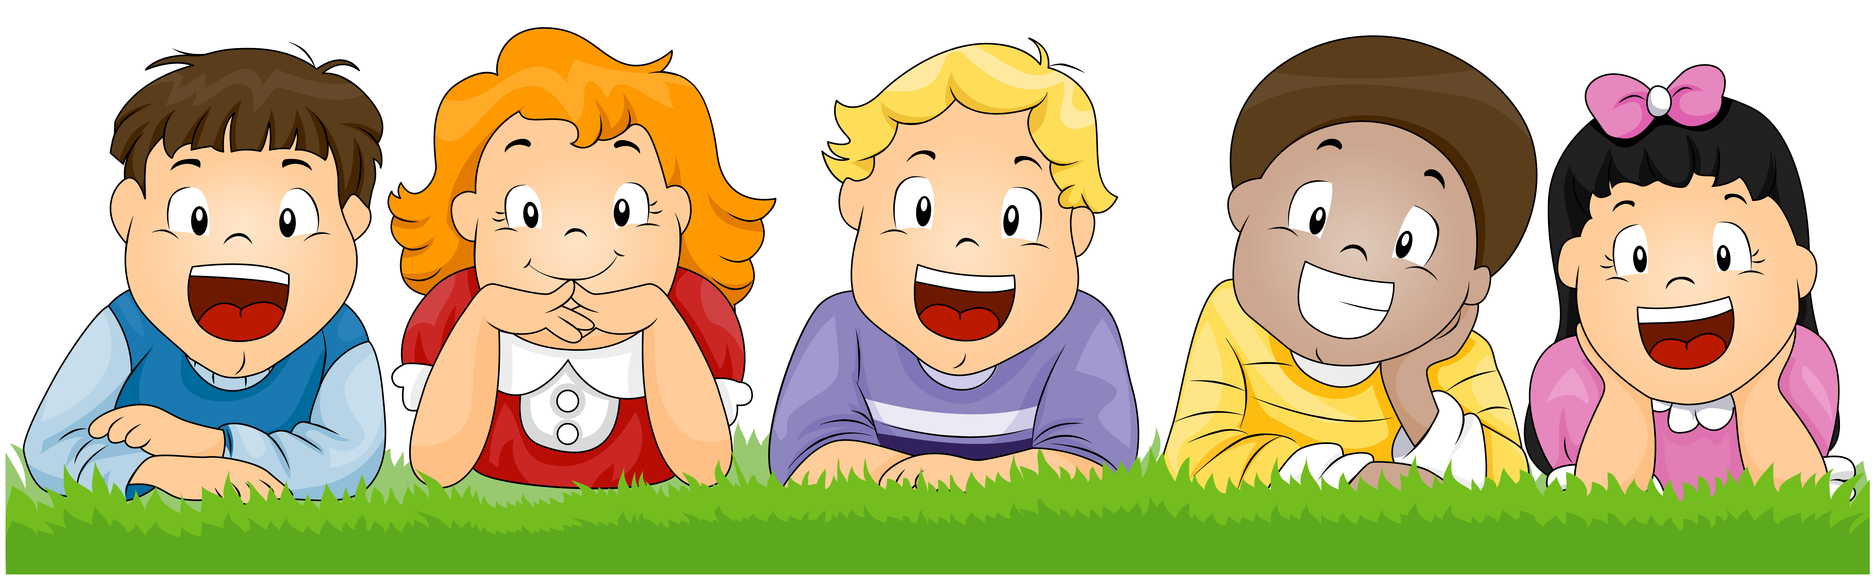 Cute kids clip art.